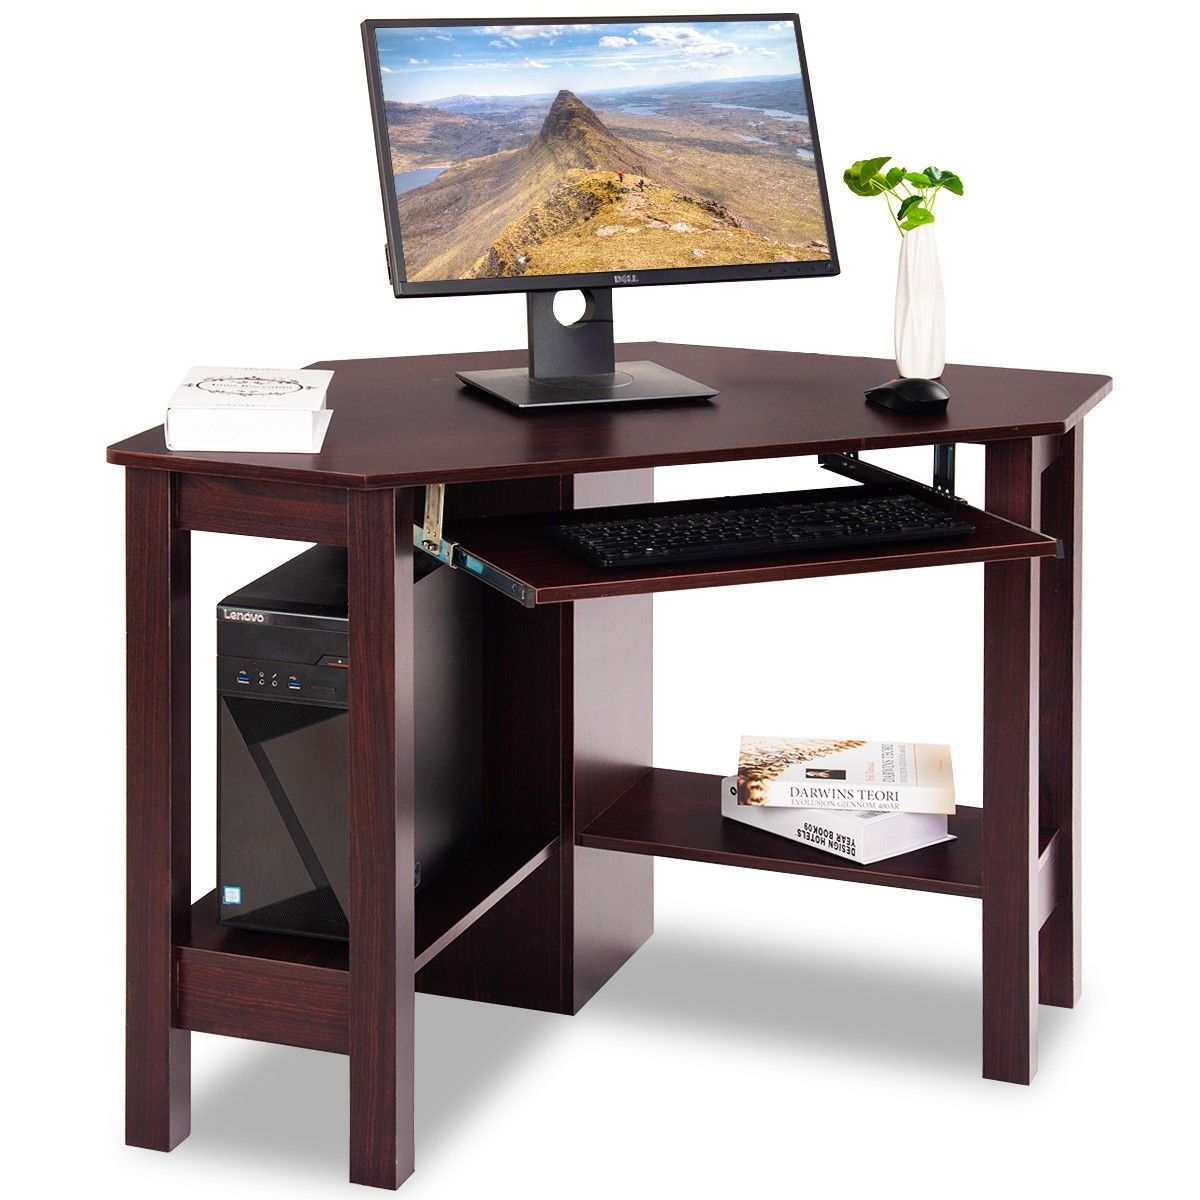 Wooden Study Computer Corner Desk With Drawer Wooden Corner Desk Desk With Drawers Small Office Desk